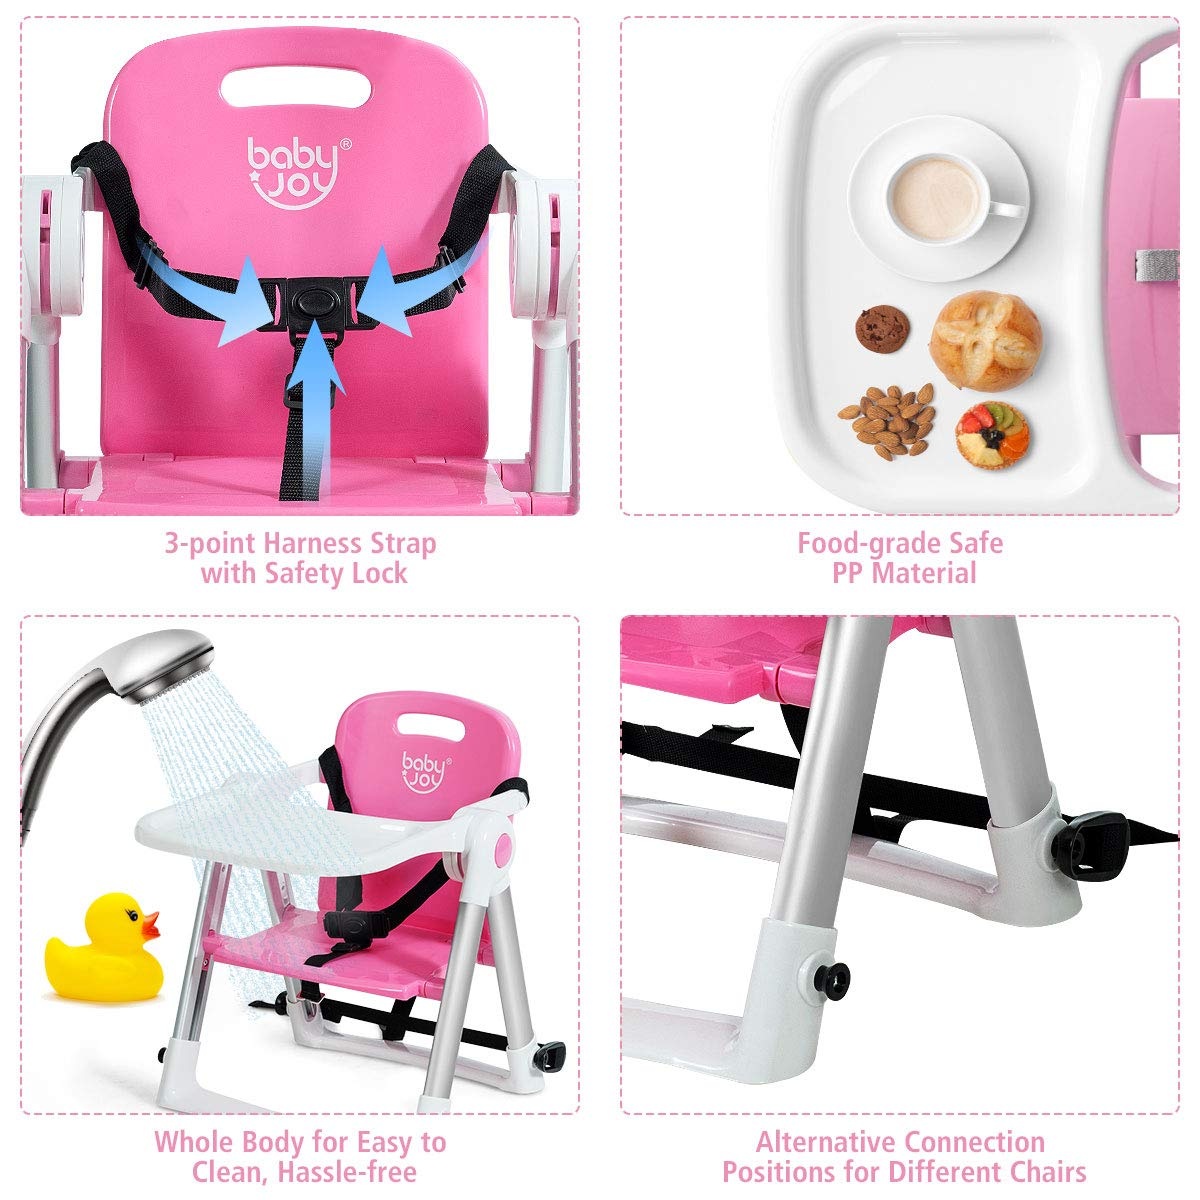 Folding Portable High Chair W//Safety Belt for Camping//Beach//Lawn Blue Dining Booster for Toddlers at Home and On-The-Go BABY JOY Travel Booster Seat with Tray for Baby